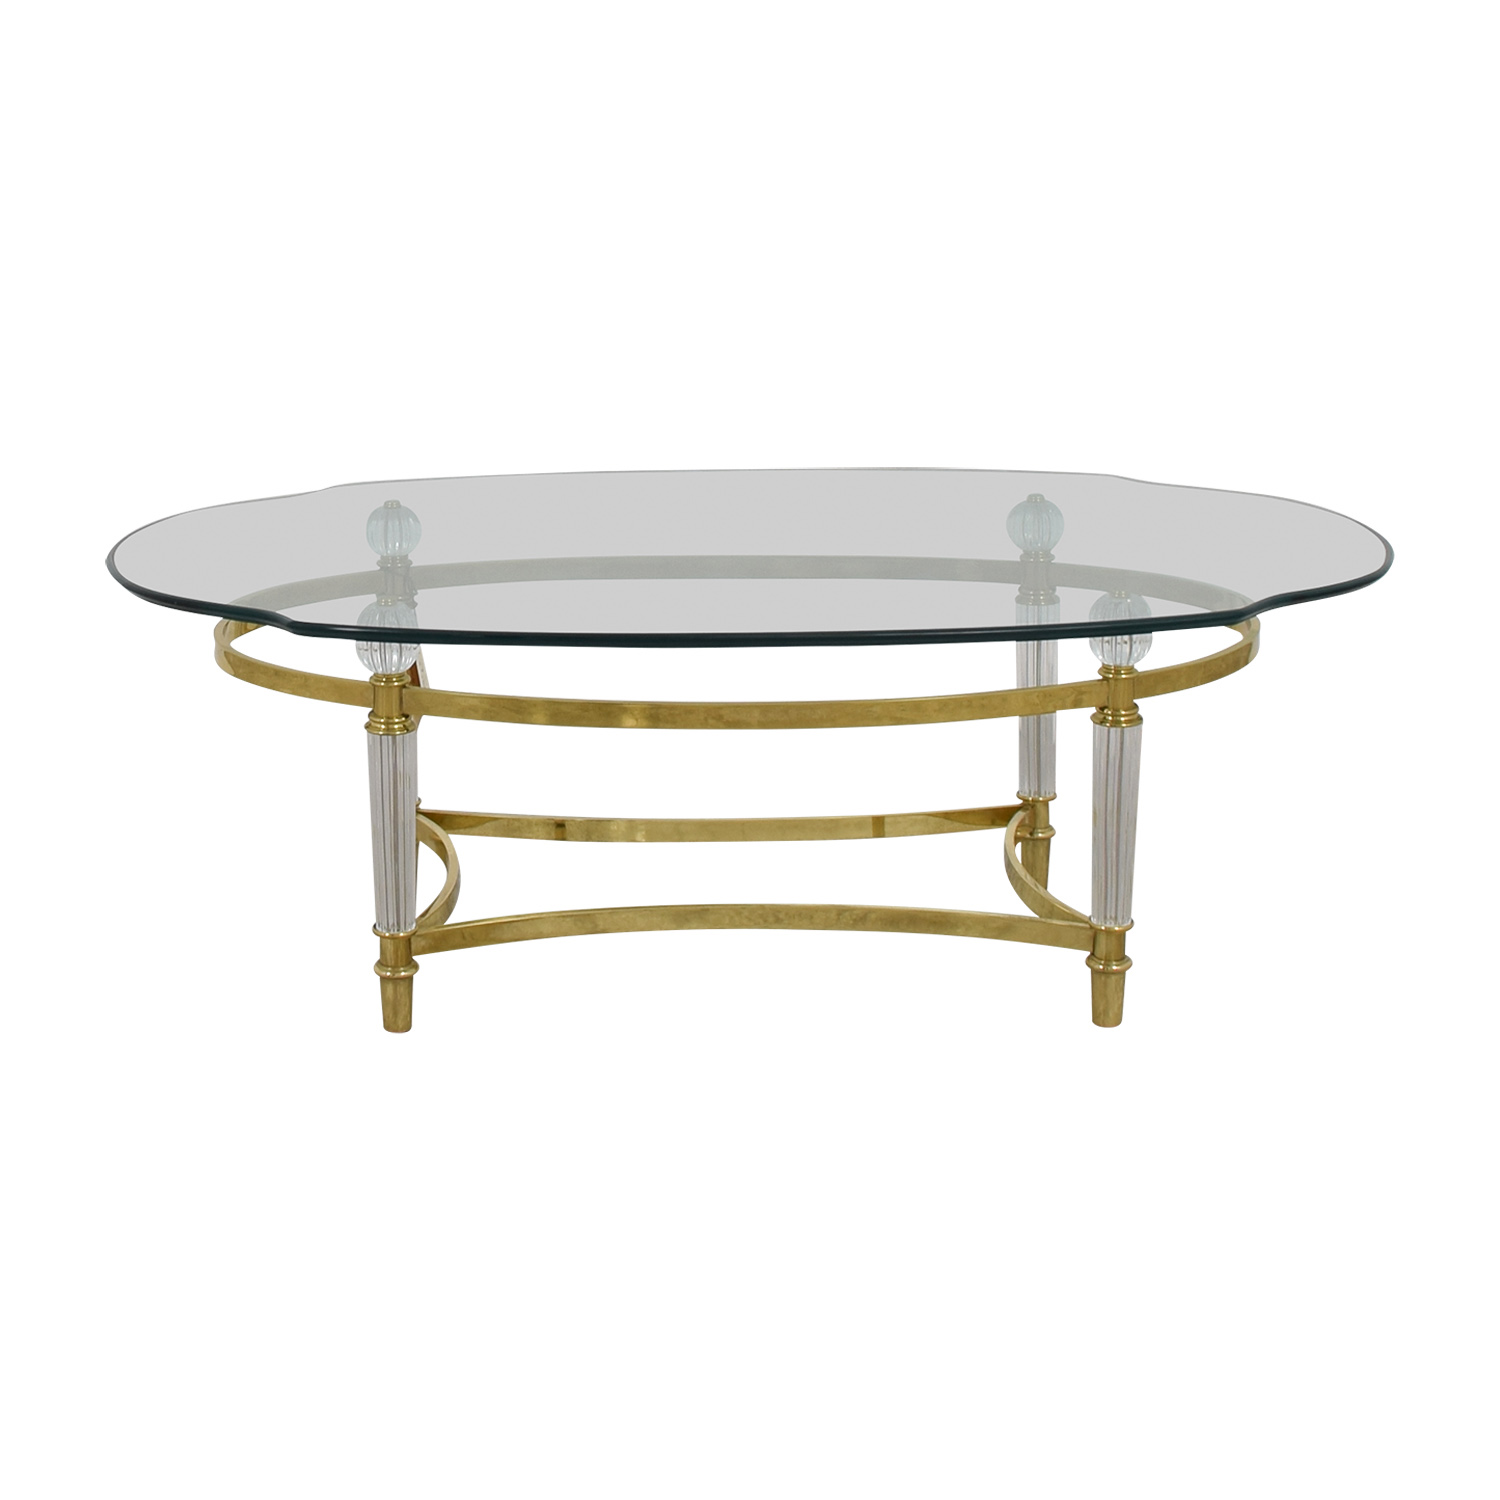 90% OFF - La Barge La Barge Brass and Italian Crystal Cocktail Table /  Tables